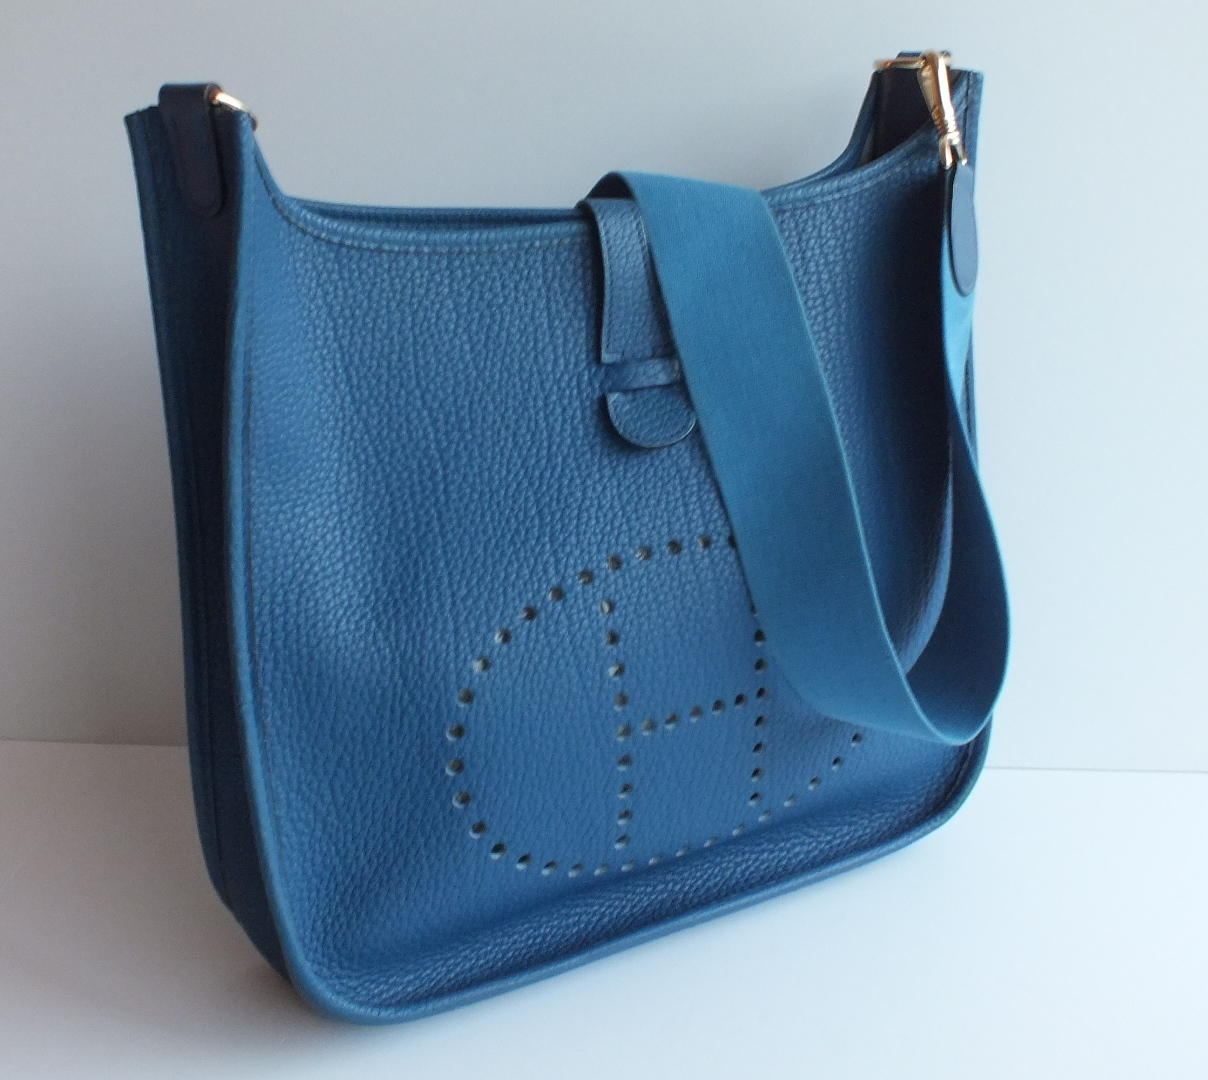 hermes evelyne sizes blue ostrich handbag. Black Bedroom Furniture Sets. Home Design Ideas